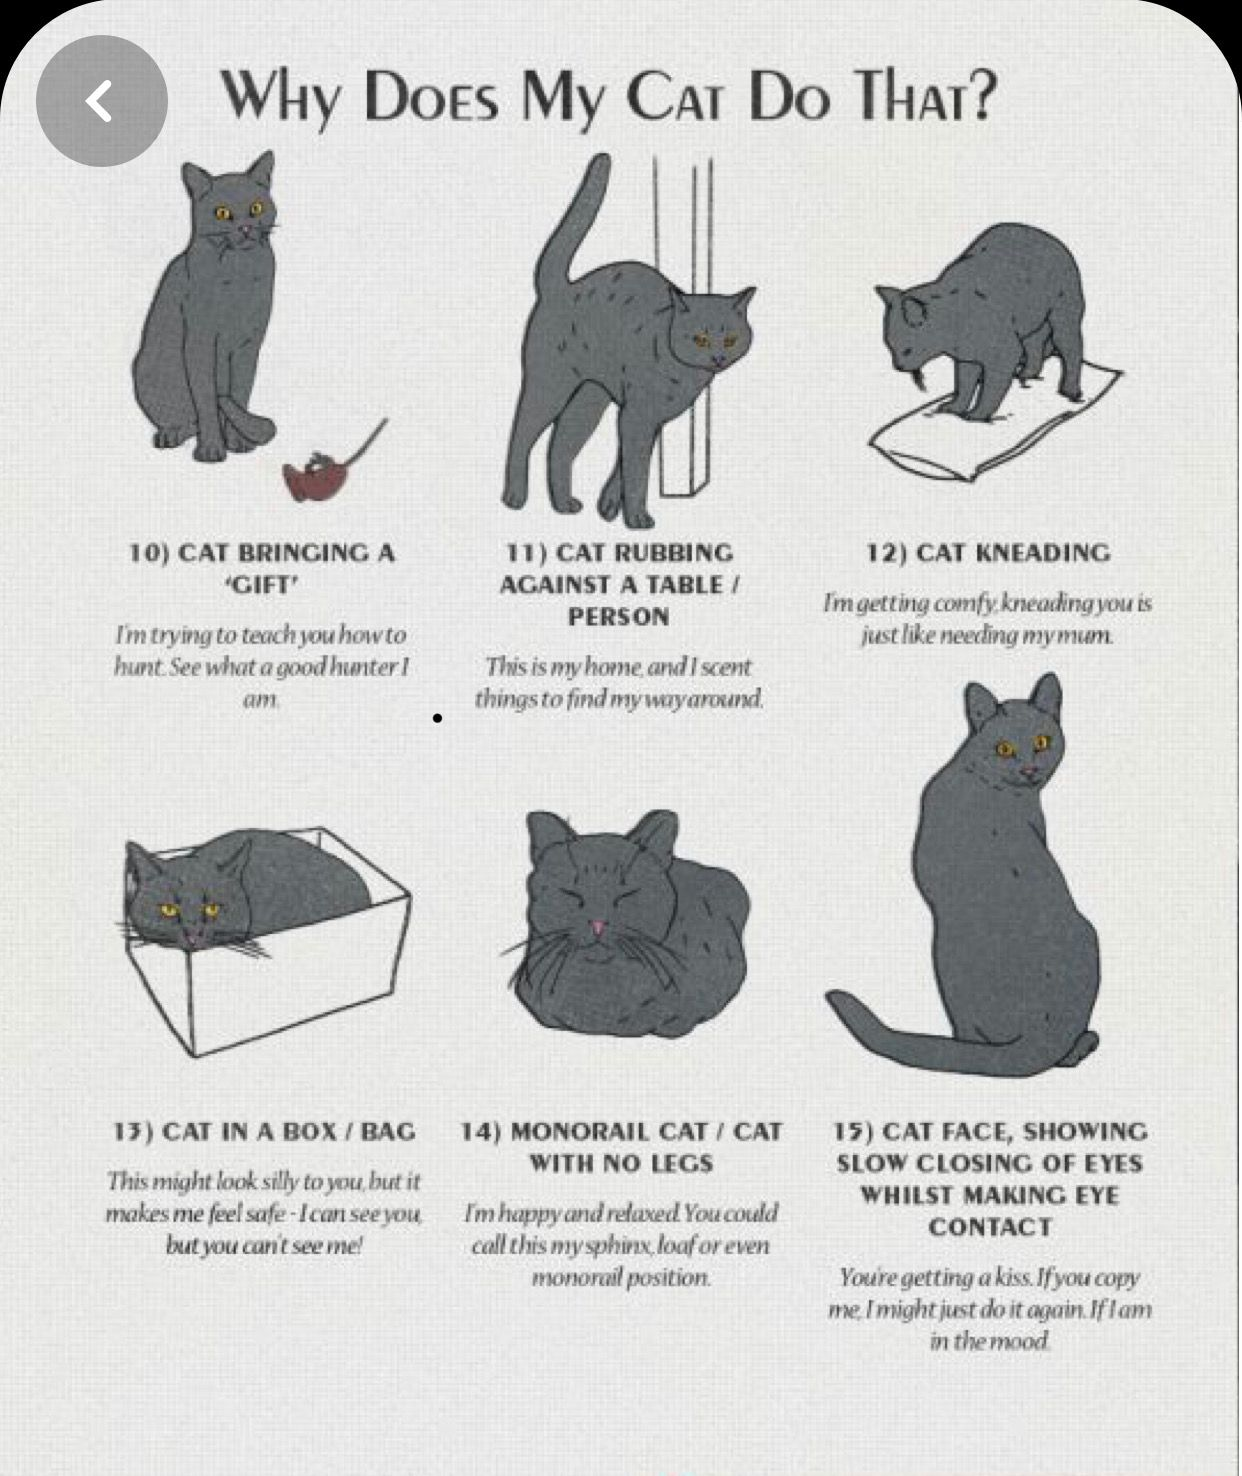 Pin By Annemiek Hardenberg On Taal Cat Behavior Cat Language Cat Facts